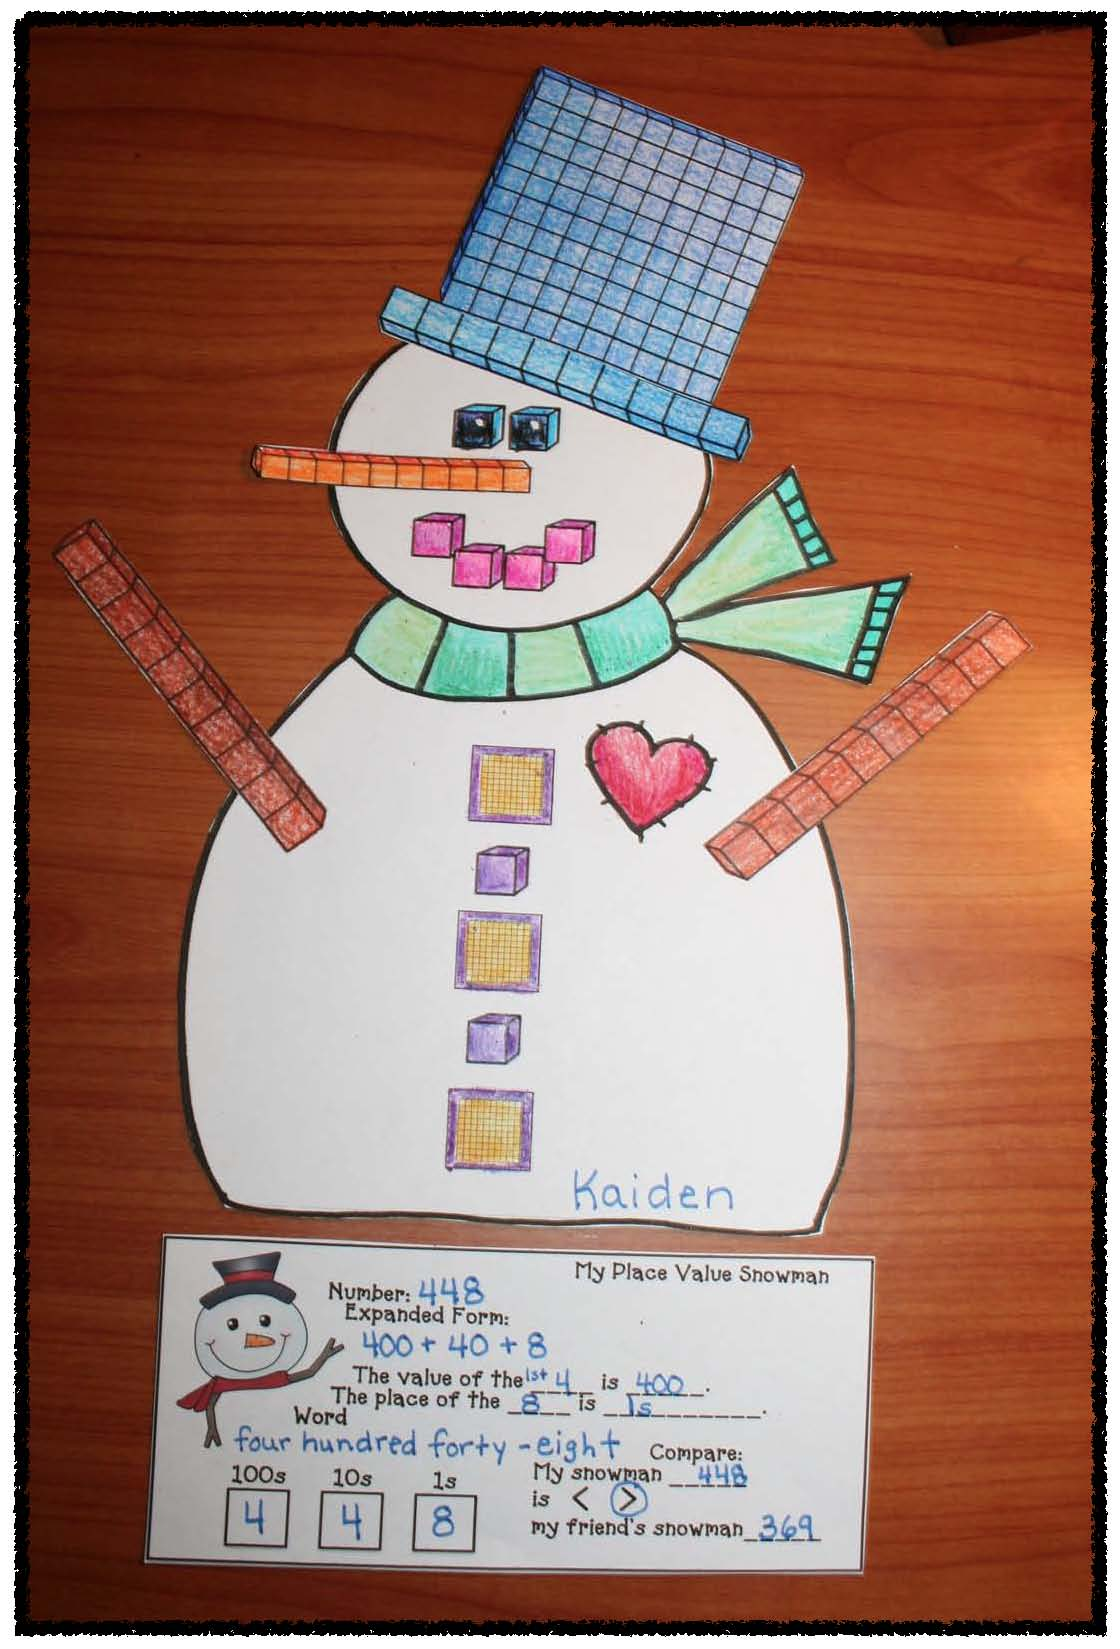 place value activities, place value crafts, place value games, snowman activities, snowman crafts, January bulletin boards, snowman glyph, glyphs, 3D cylider shape activities, 3D shape crafts, 3D shape activities,